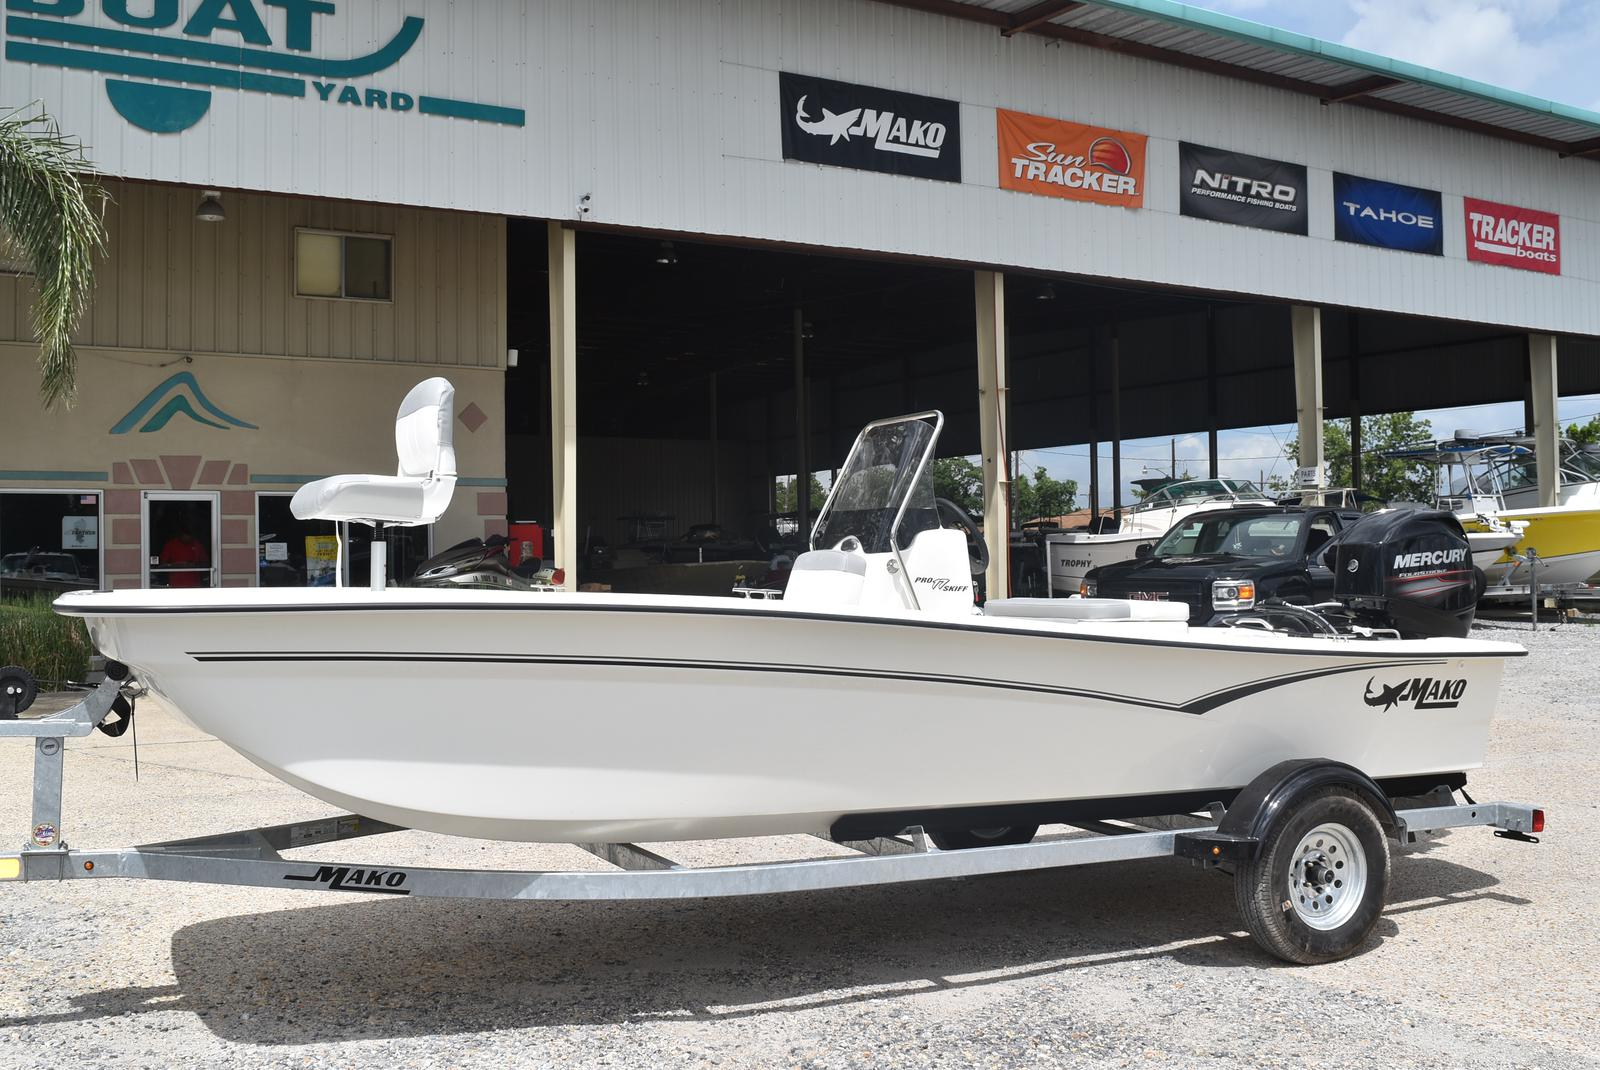 2020 Mako boat for sale, model of the boat is Pro Skiff 17, 75 ELPT & Image # 149 of 702